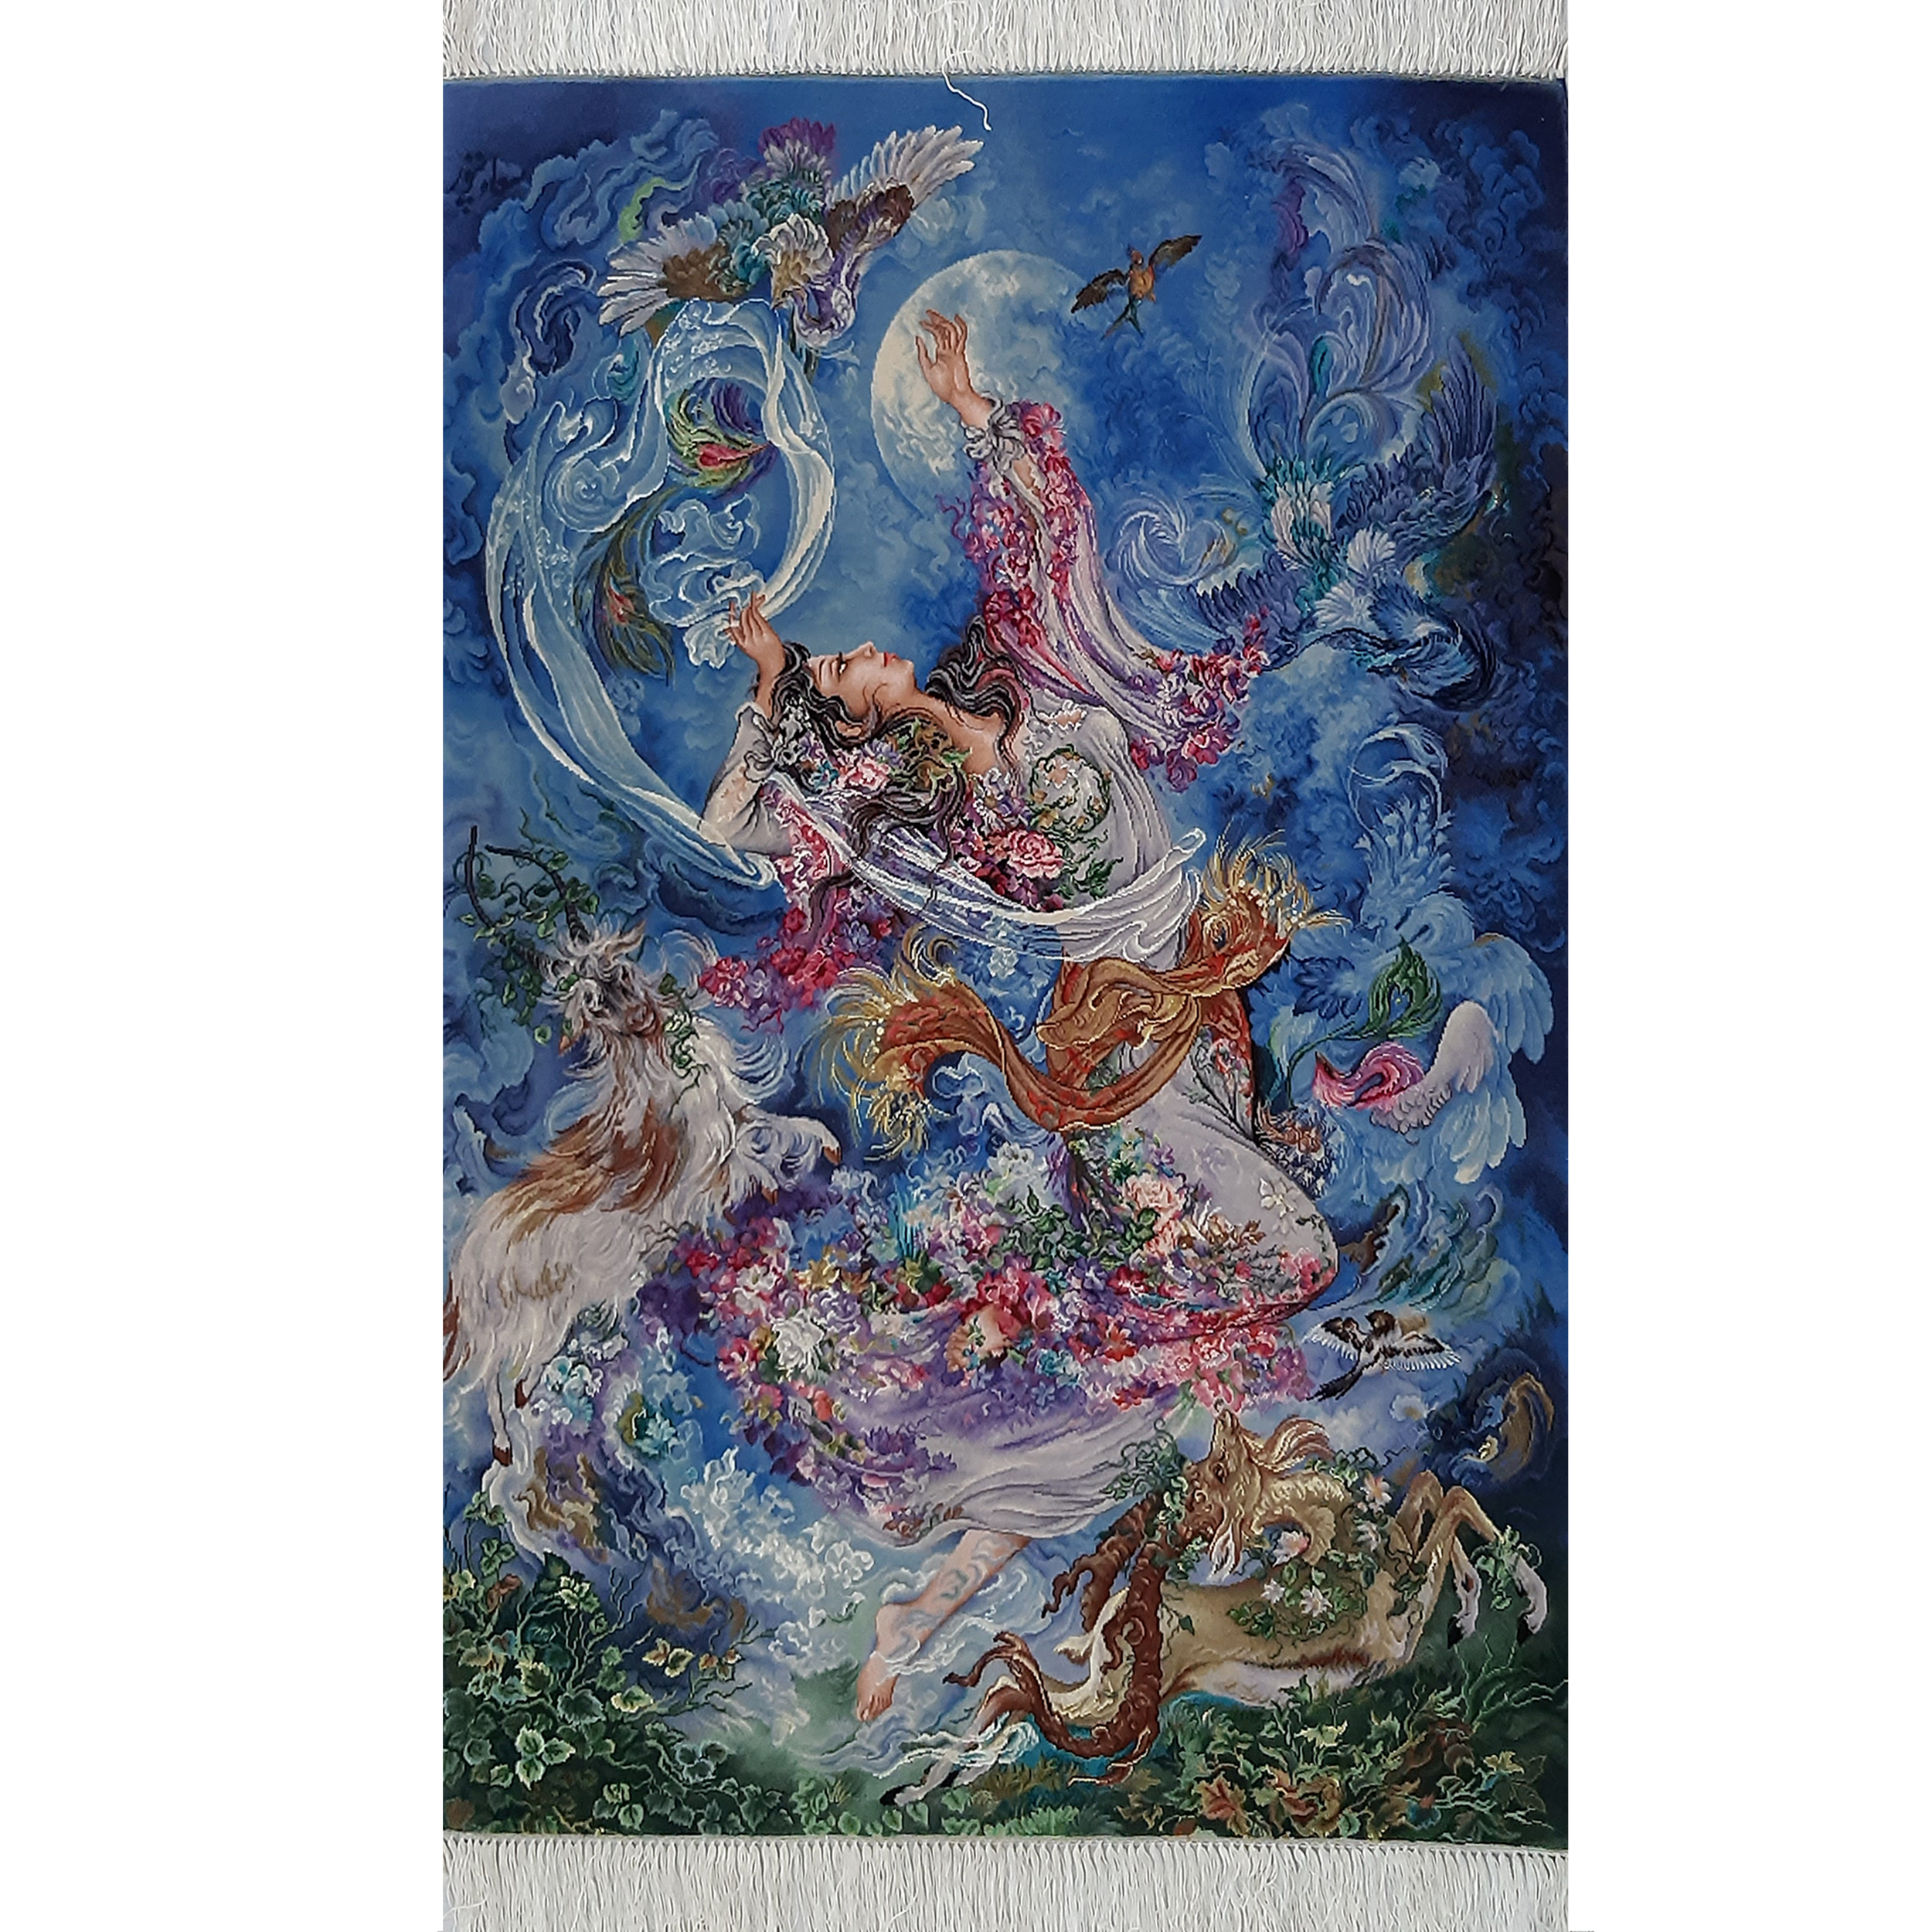 Handmade Persian carpet tableau, code 239